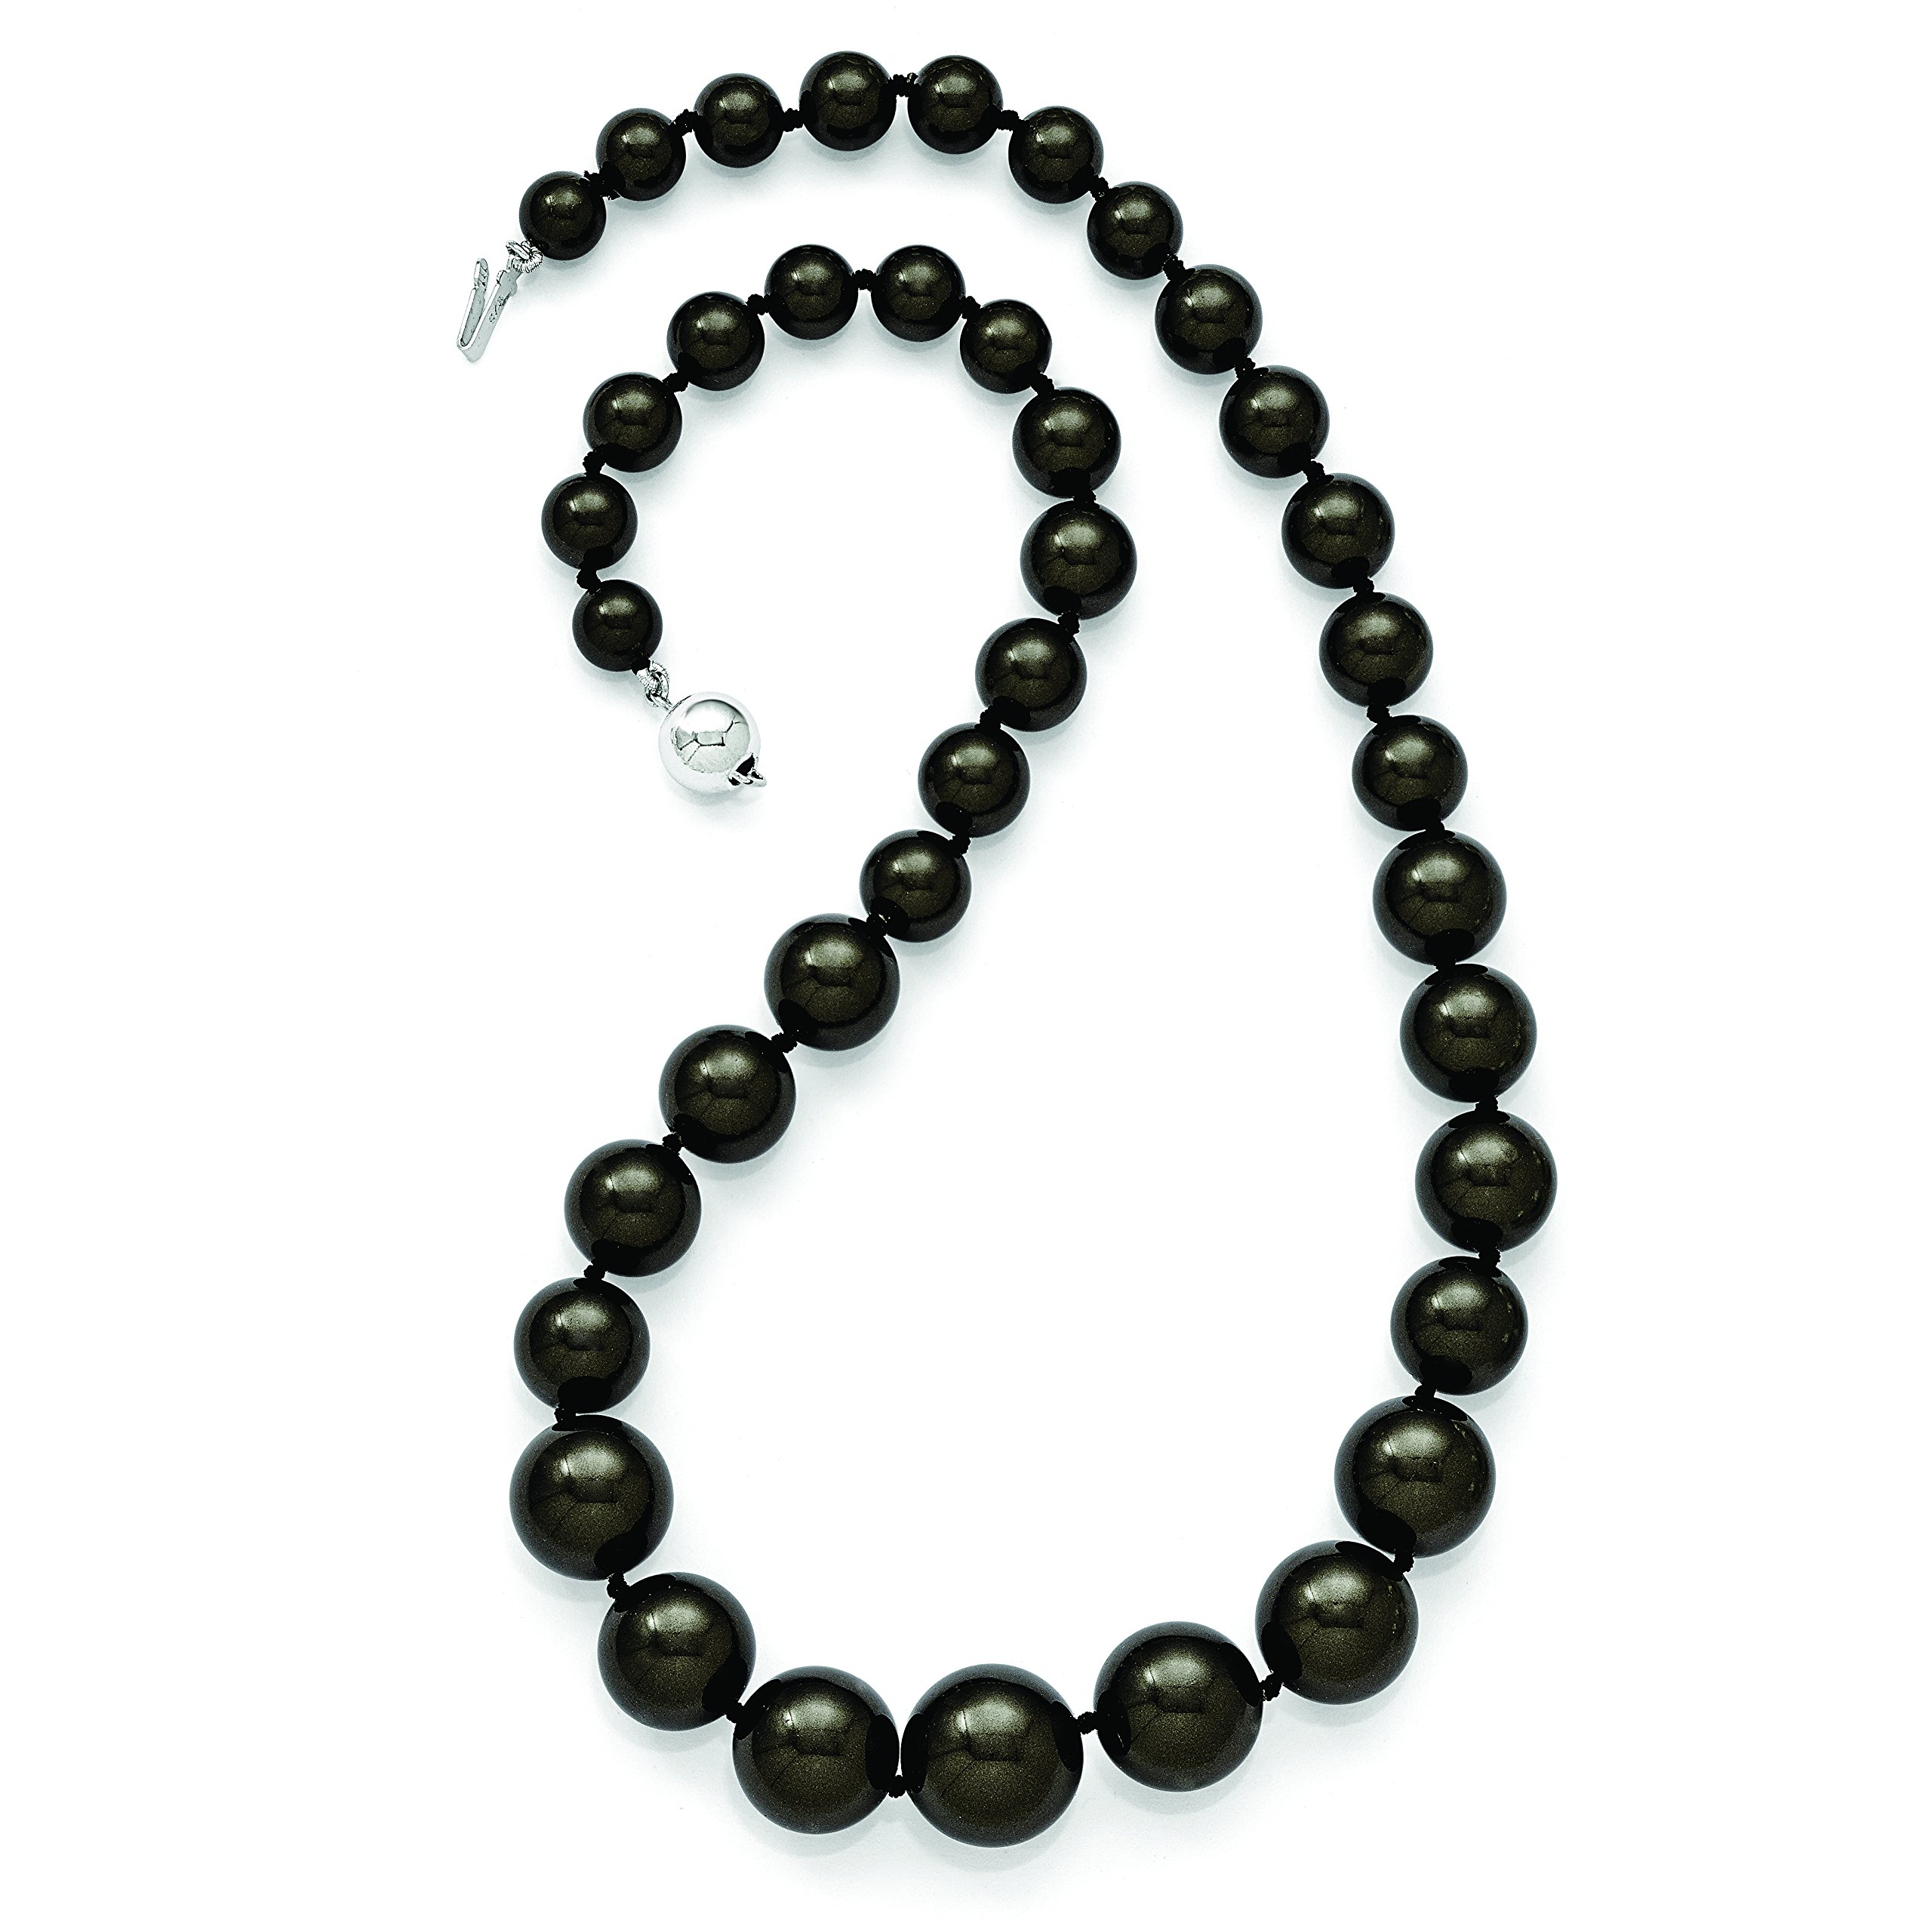 ICE CARATS 925 Sterling Silver Majestik 8 16mm Graduated Black Shell Bead Chain Necklace Pearl Fine Jewelry Gift Set For Women Heart by ICE CARATS (Image #2)